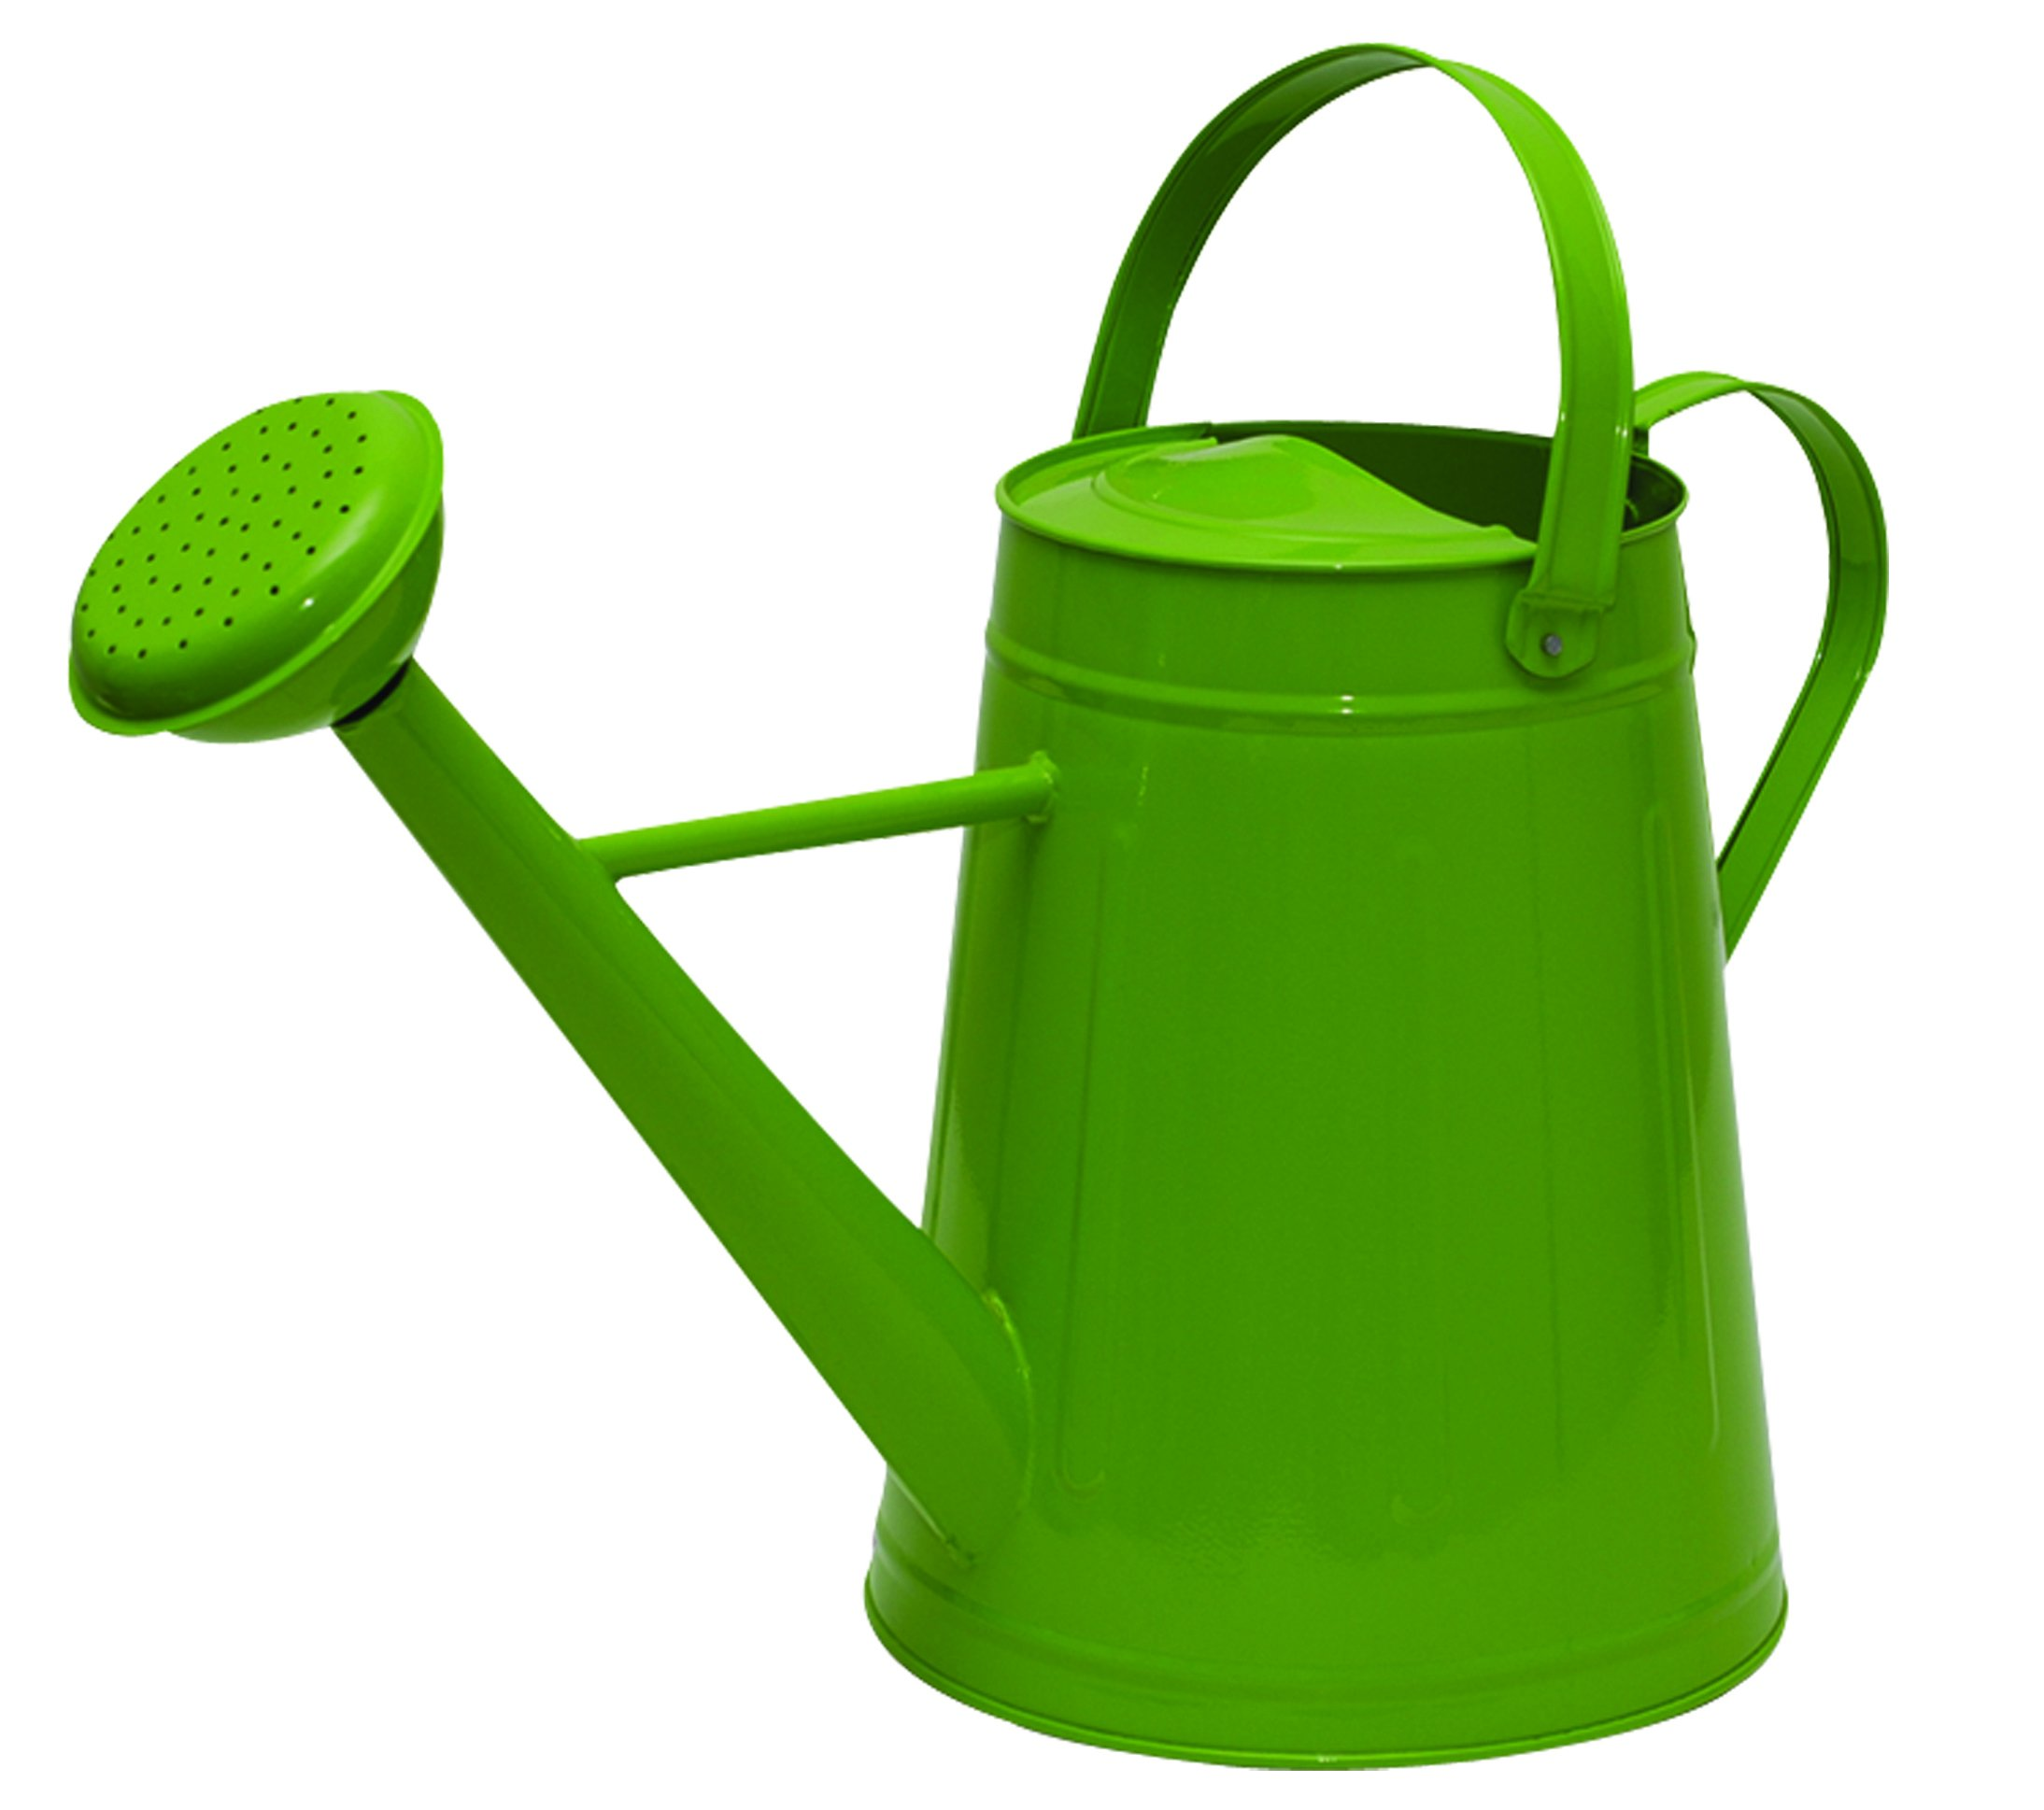 Tierra Garden 36-5081G Traditional Watering Can, 2.1-Gallon, Green